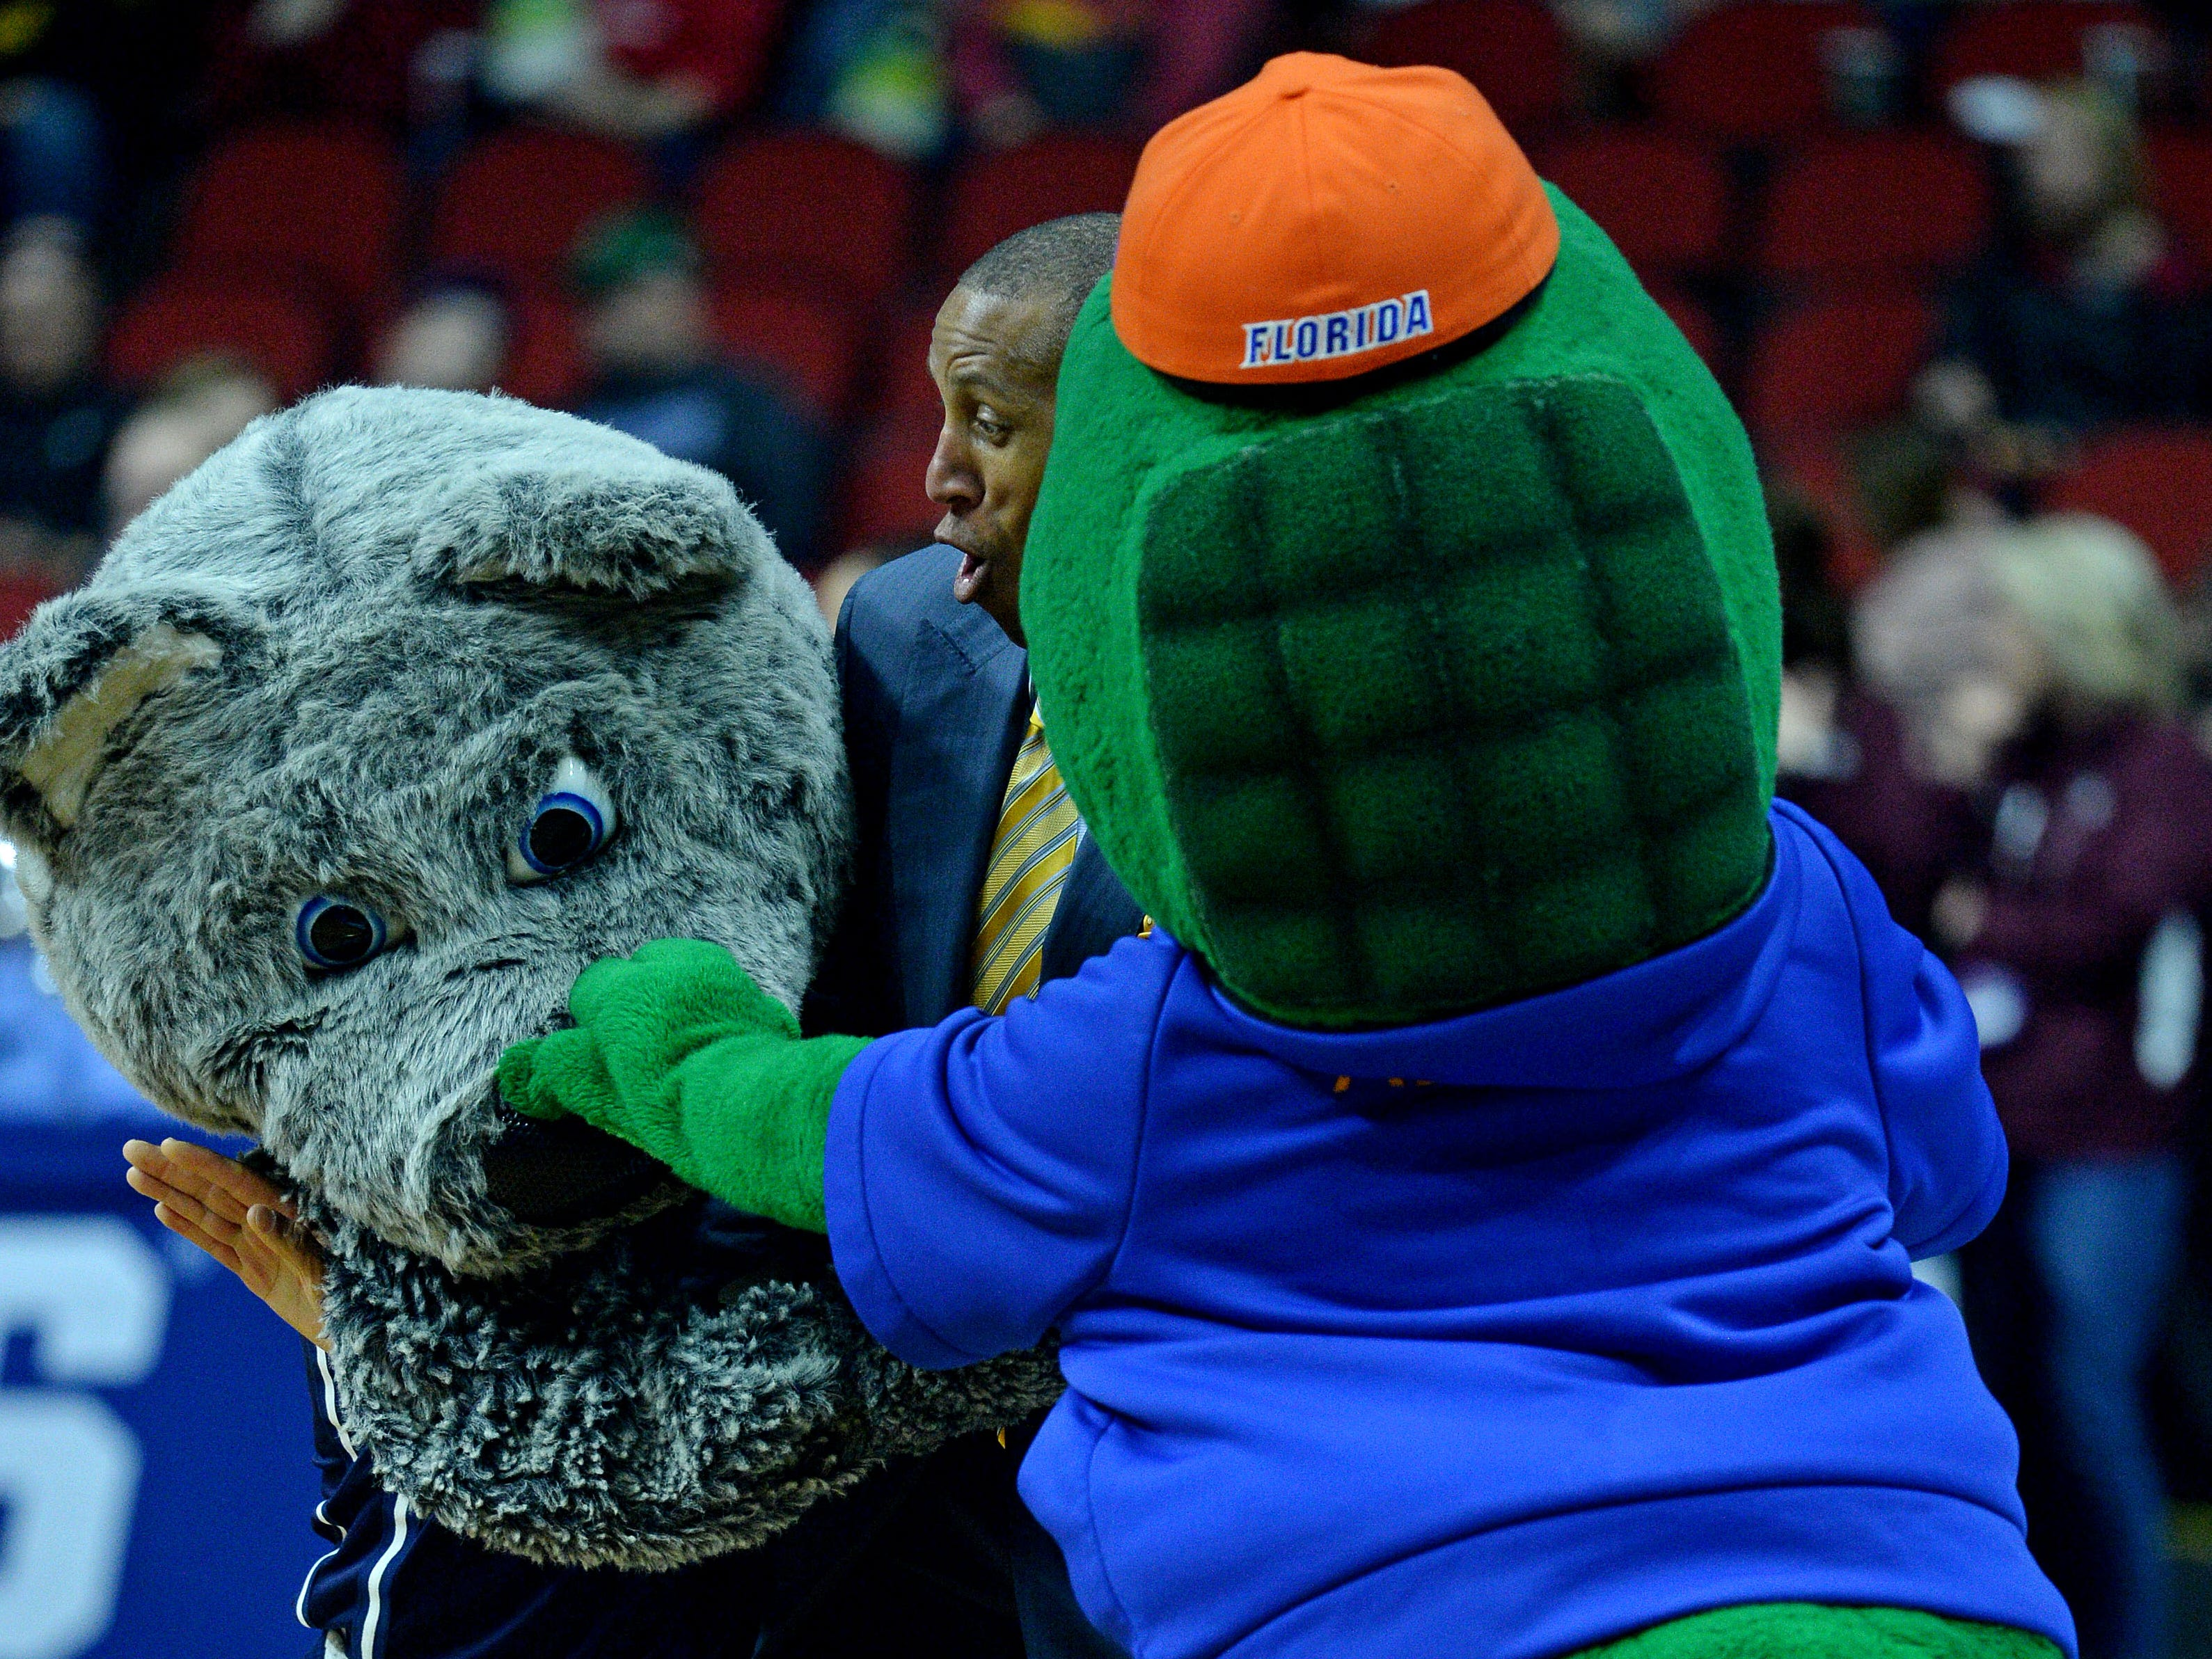 TV analyst Reggie Miller pretends to break up a fight between the Nevada Wolf Pack and the Florida Gators mascot March 21, 2019, in the first round of the NCAA Tournament at Wells Fargo Arena in Des Moines.